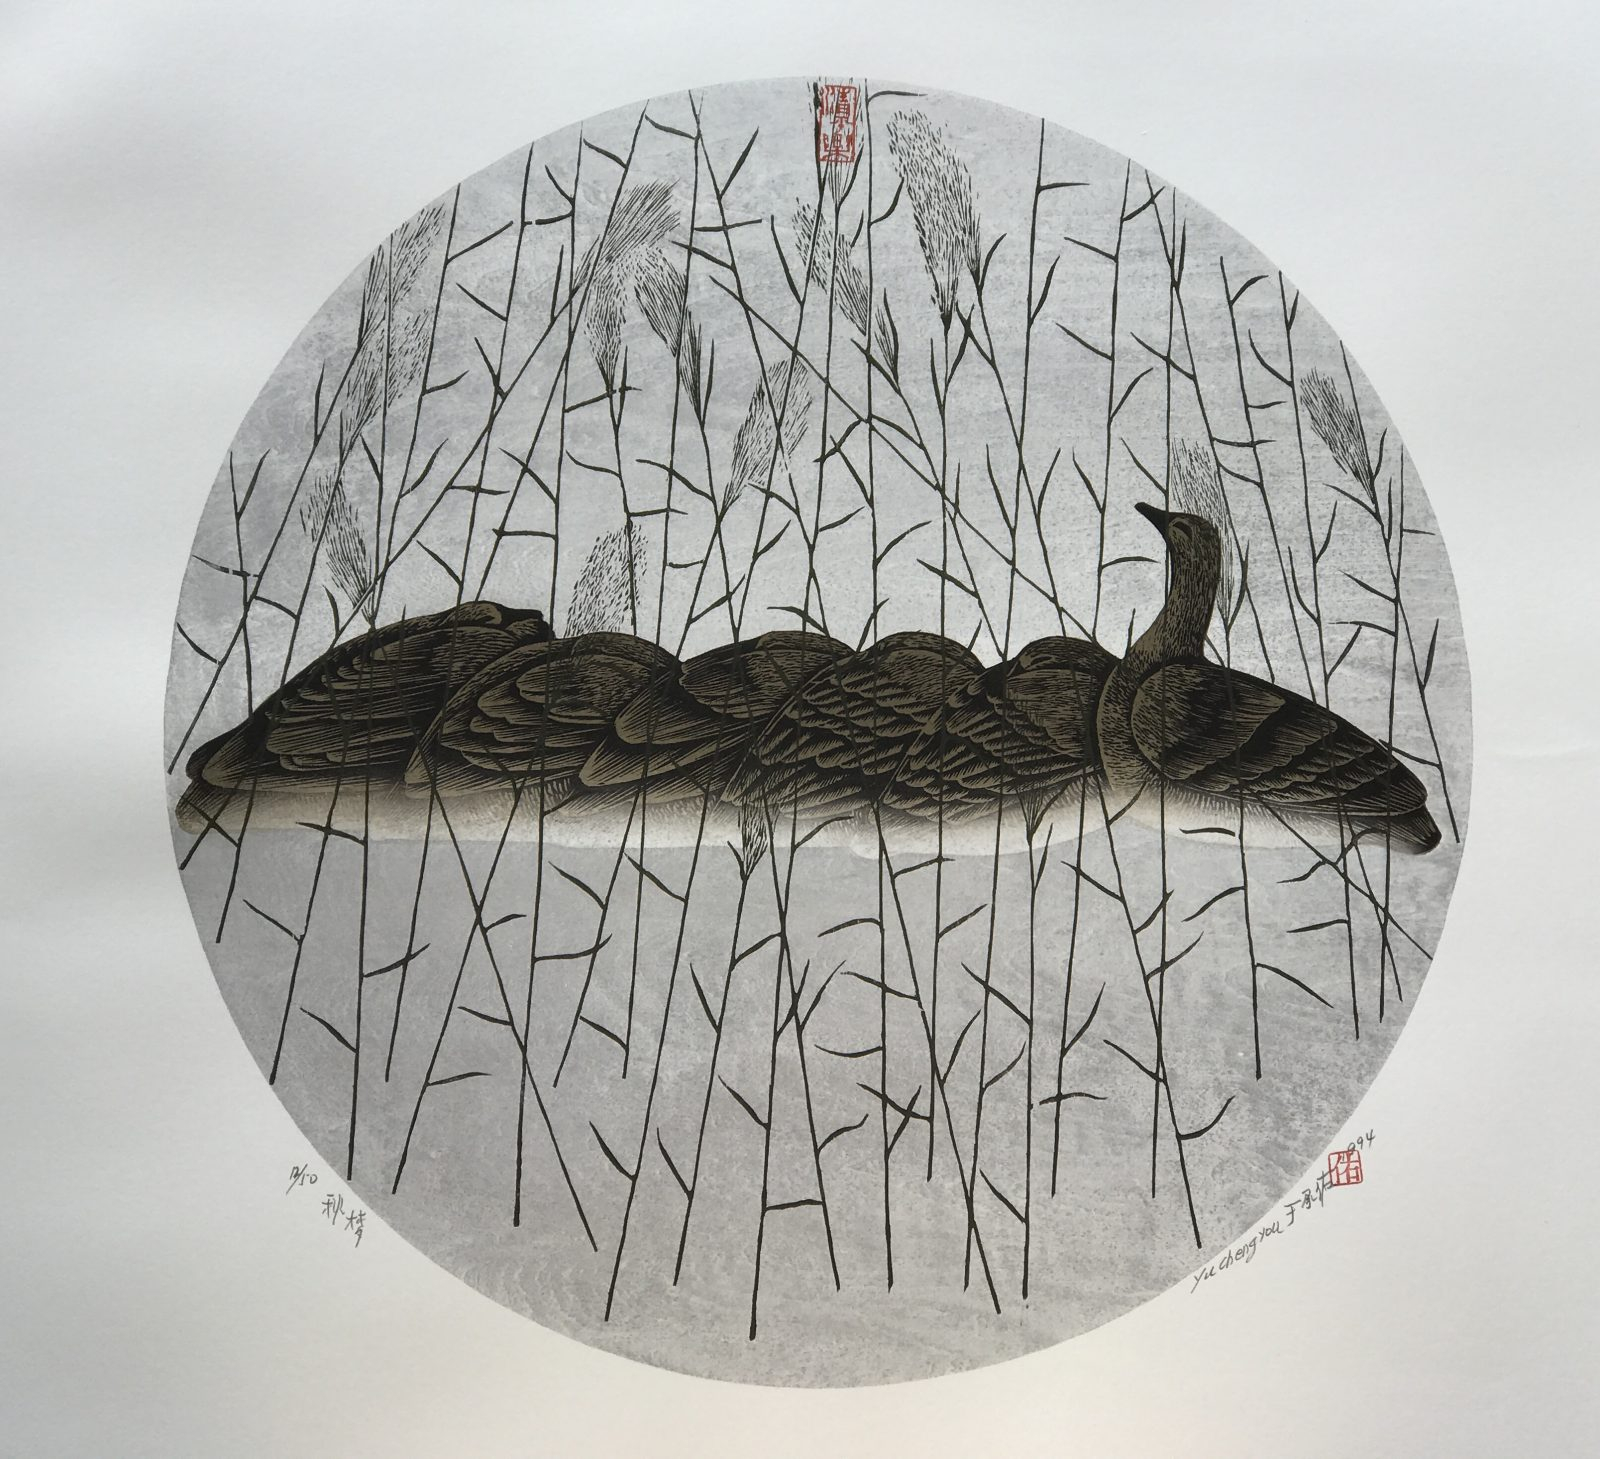 Autumn Dream 12:50 by Yu Chengyou,50.70cm Diameter